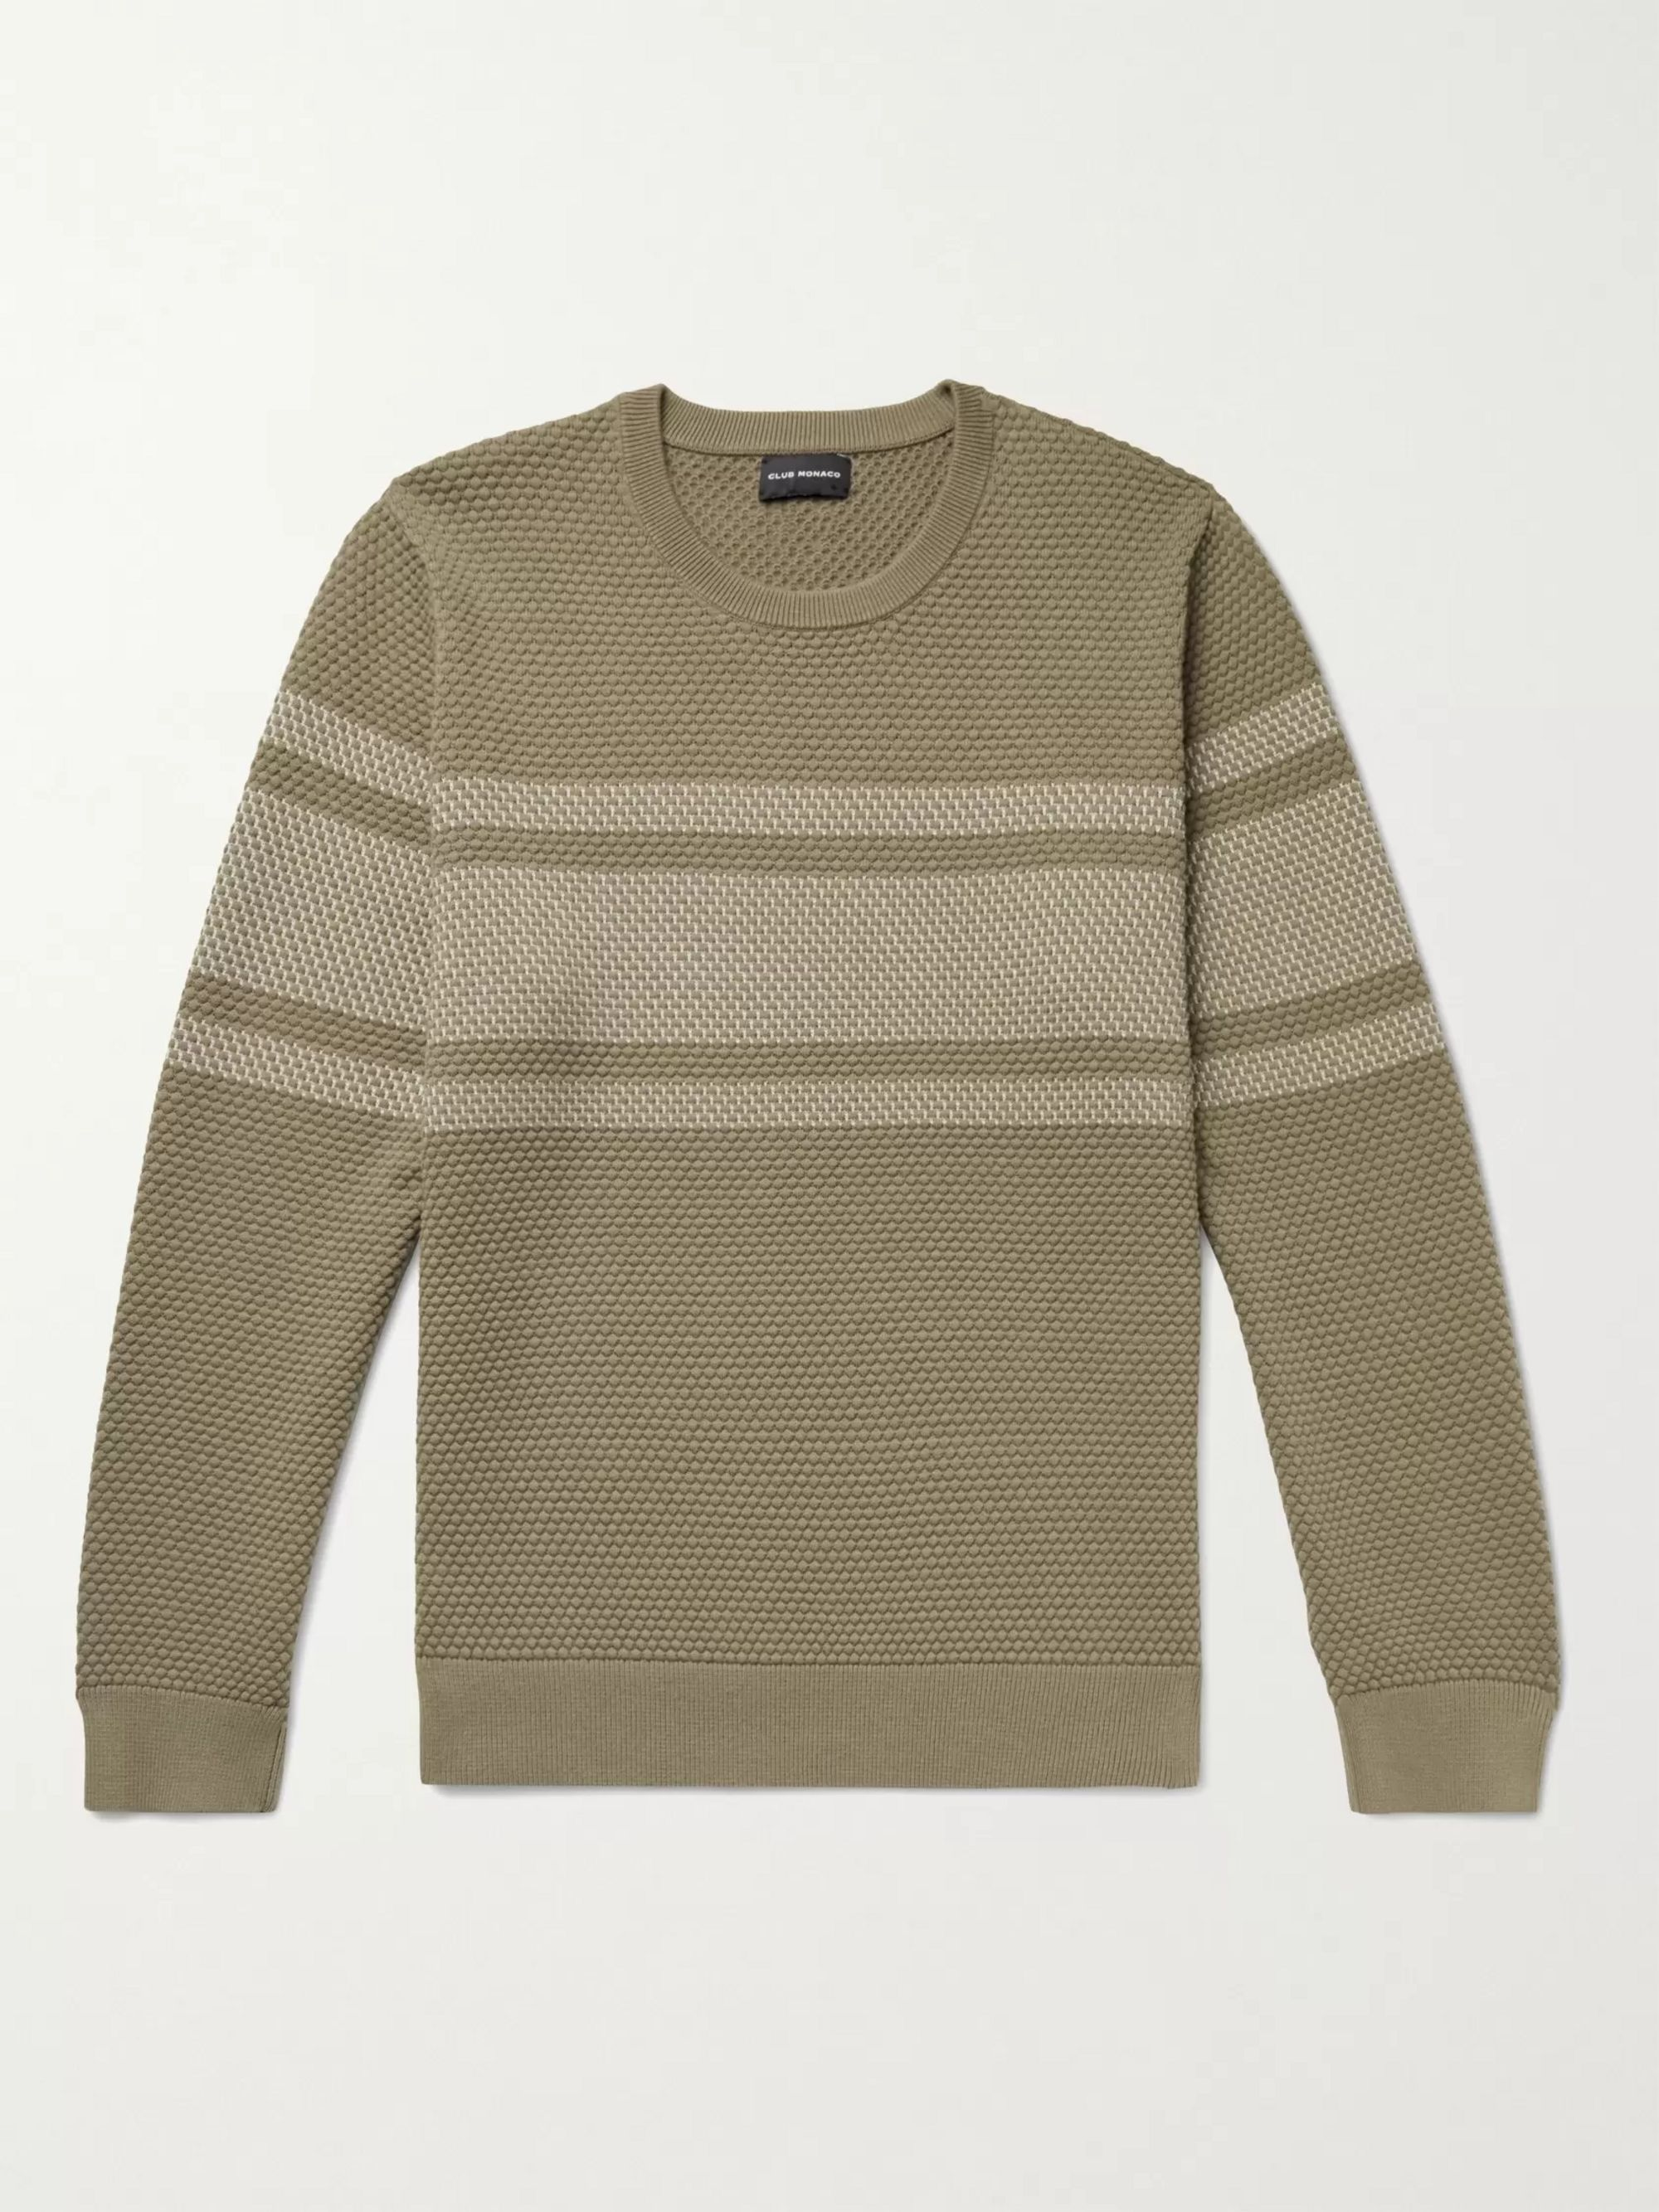 CLUB MONACO Striped Honeycomb-Knit Cotton-Blend Sweater